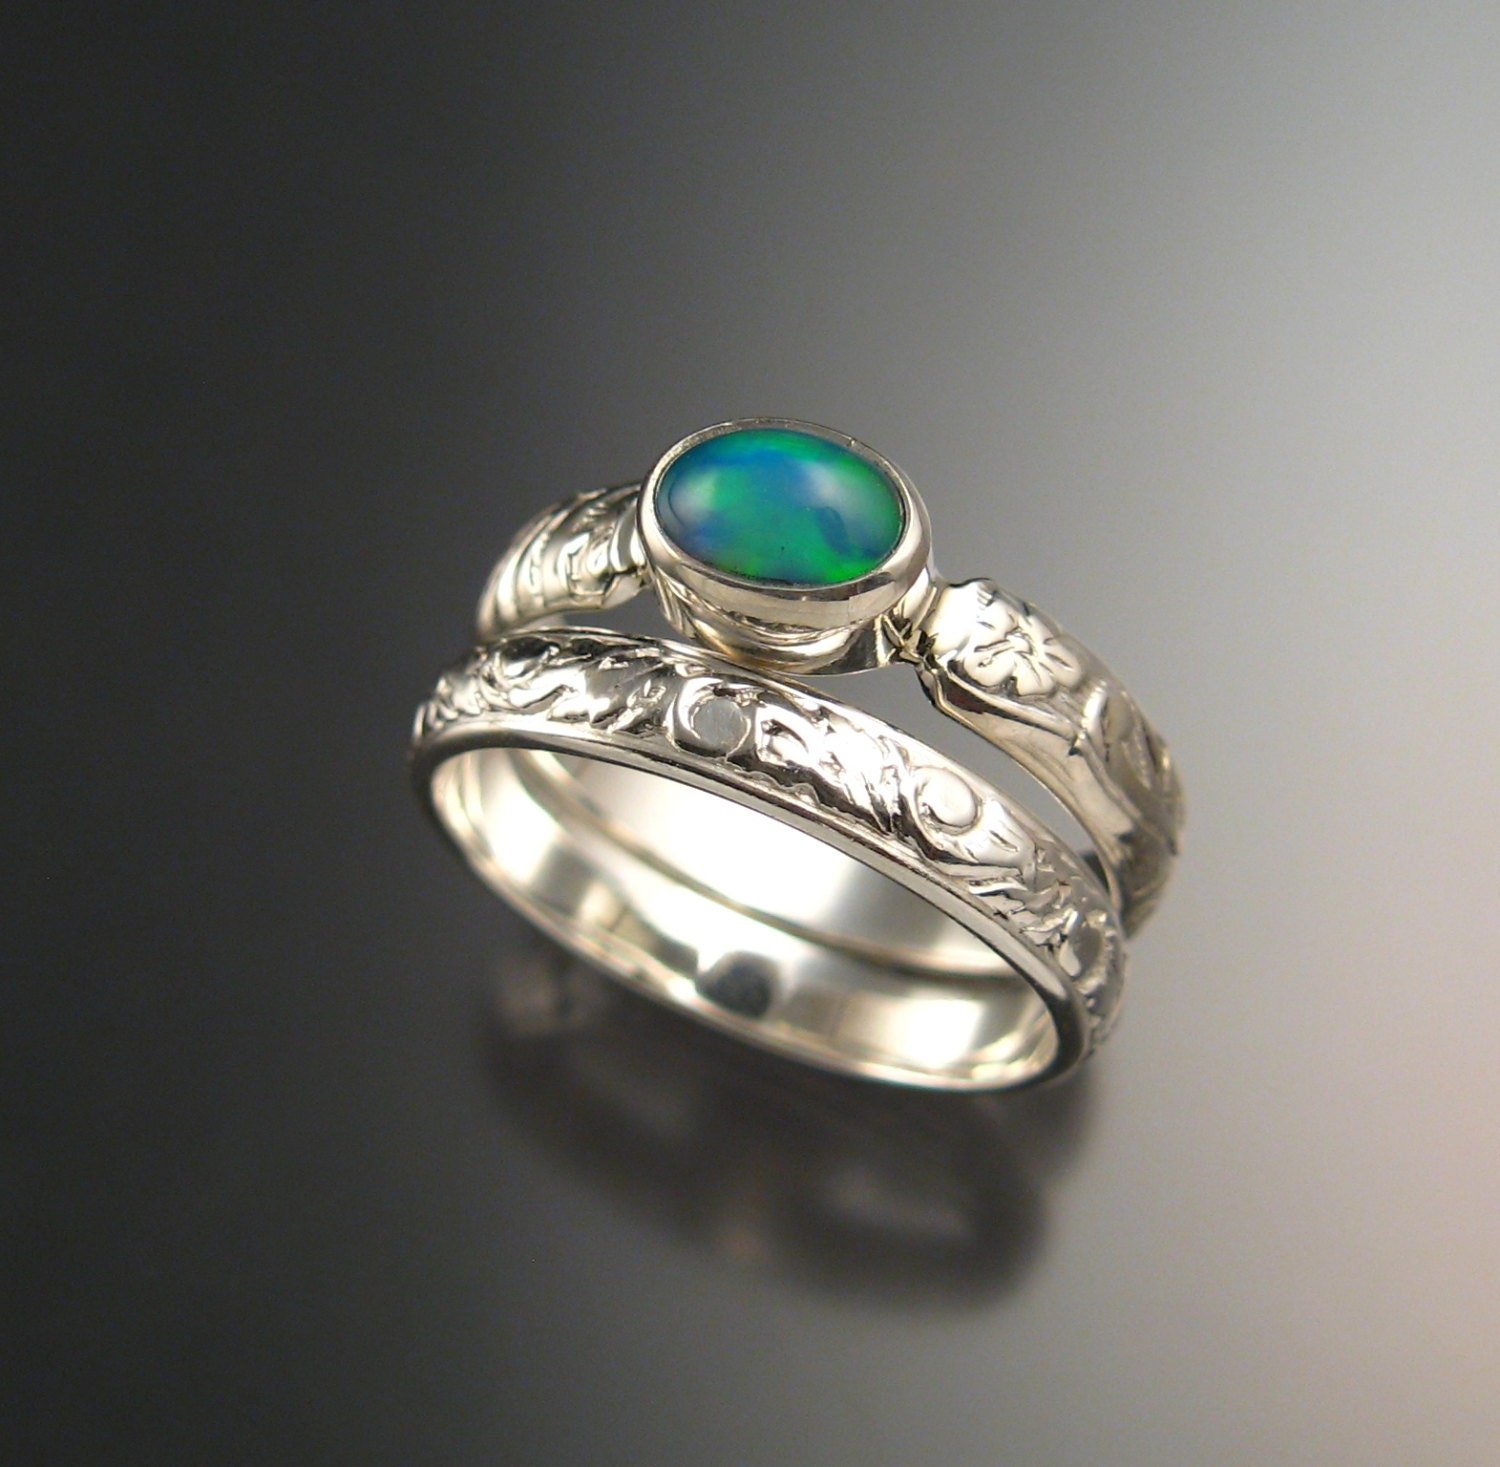 Opal and Sterling silver Wedding Ring Set Victorian floral